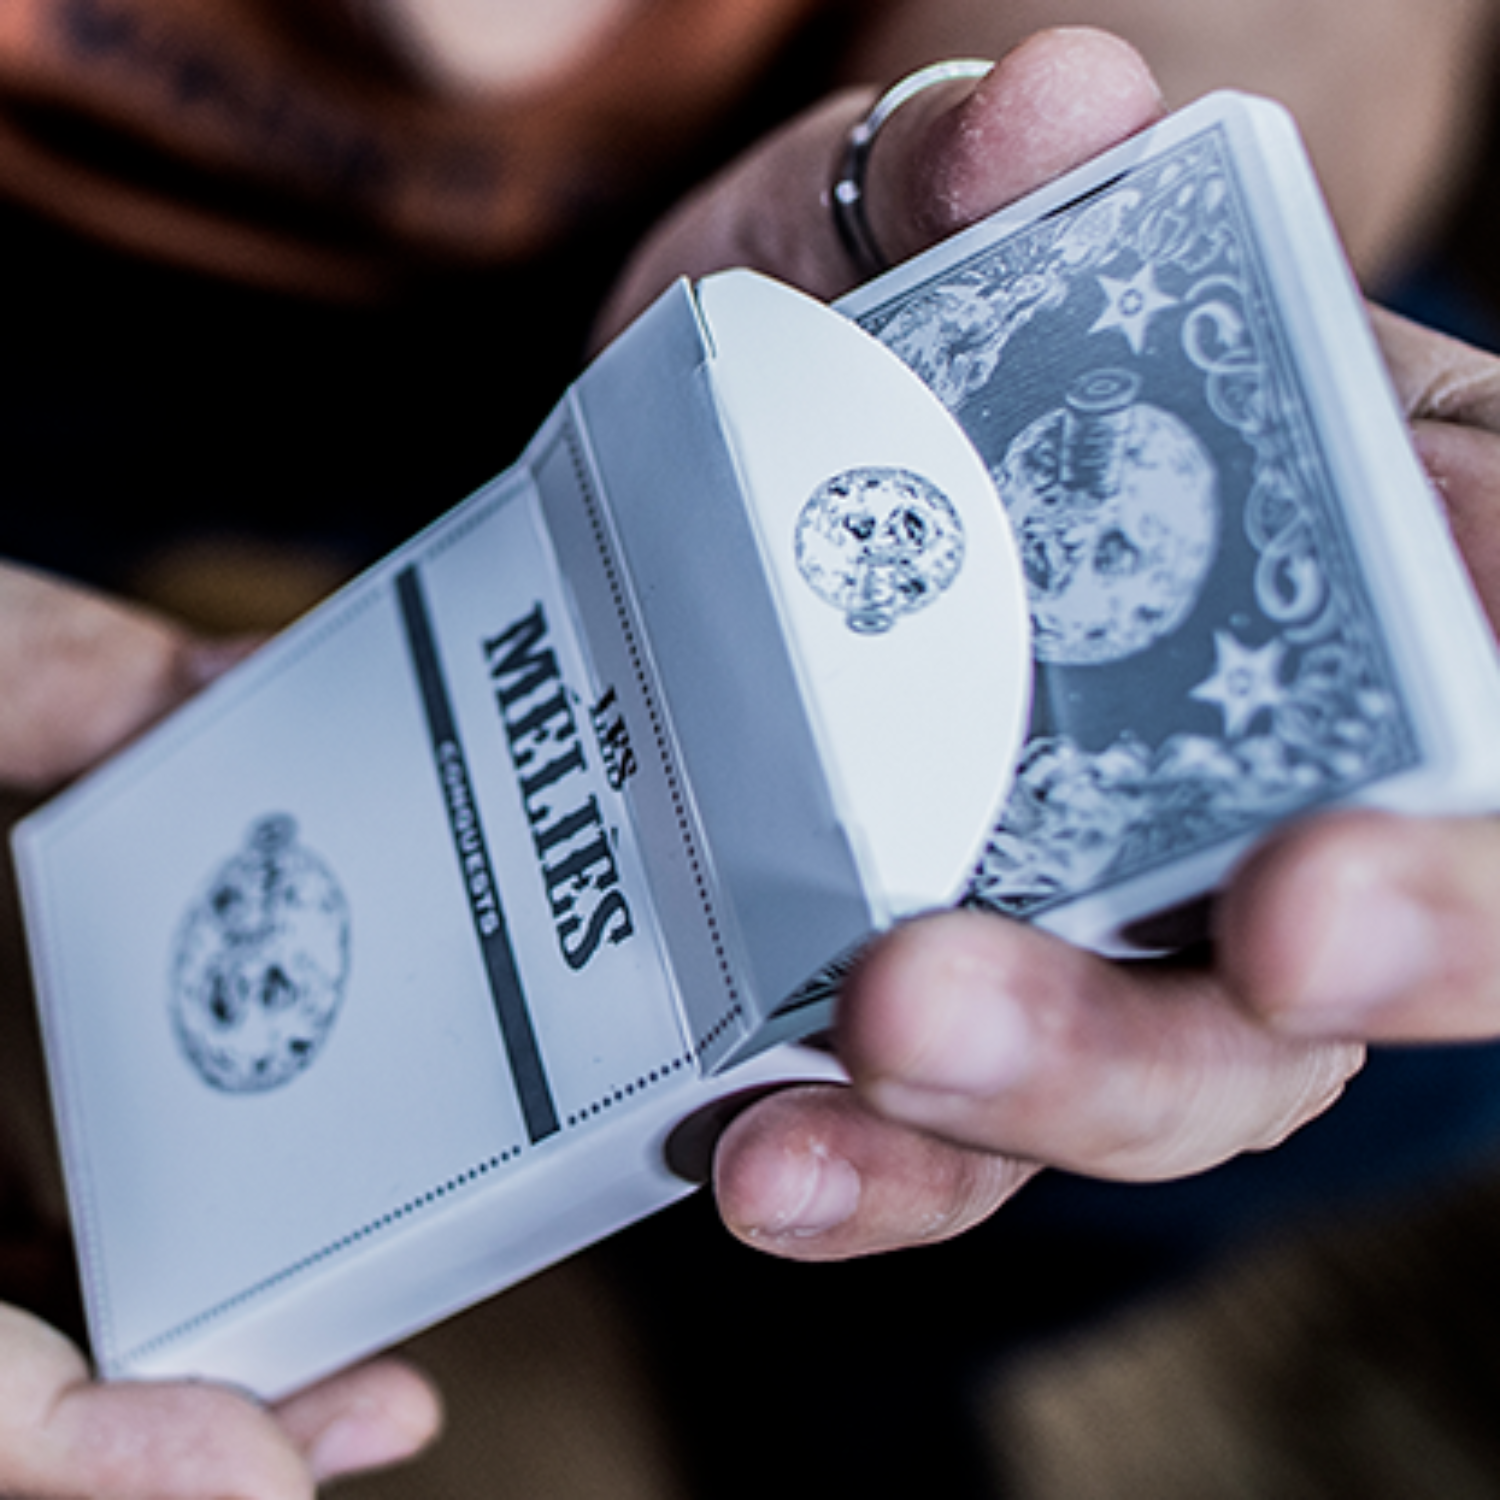 [르 멜리에스덱]Les Melies Conquests Playing Cards by Pure Imagination Projects